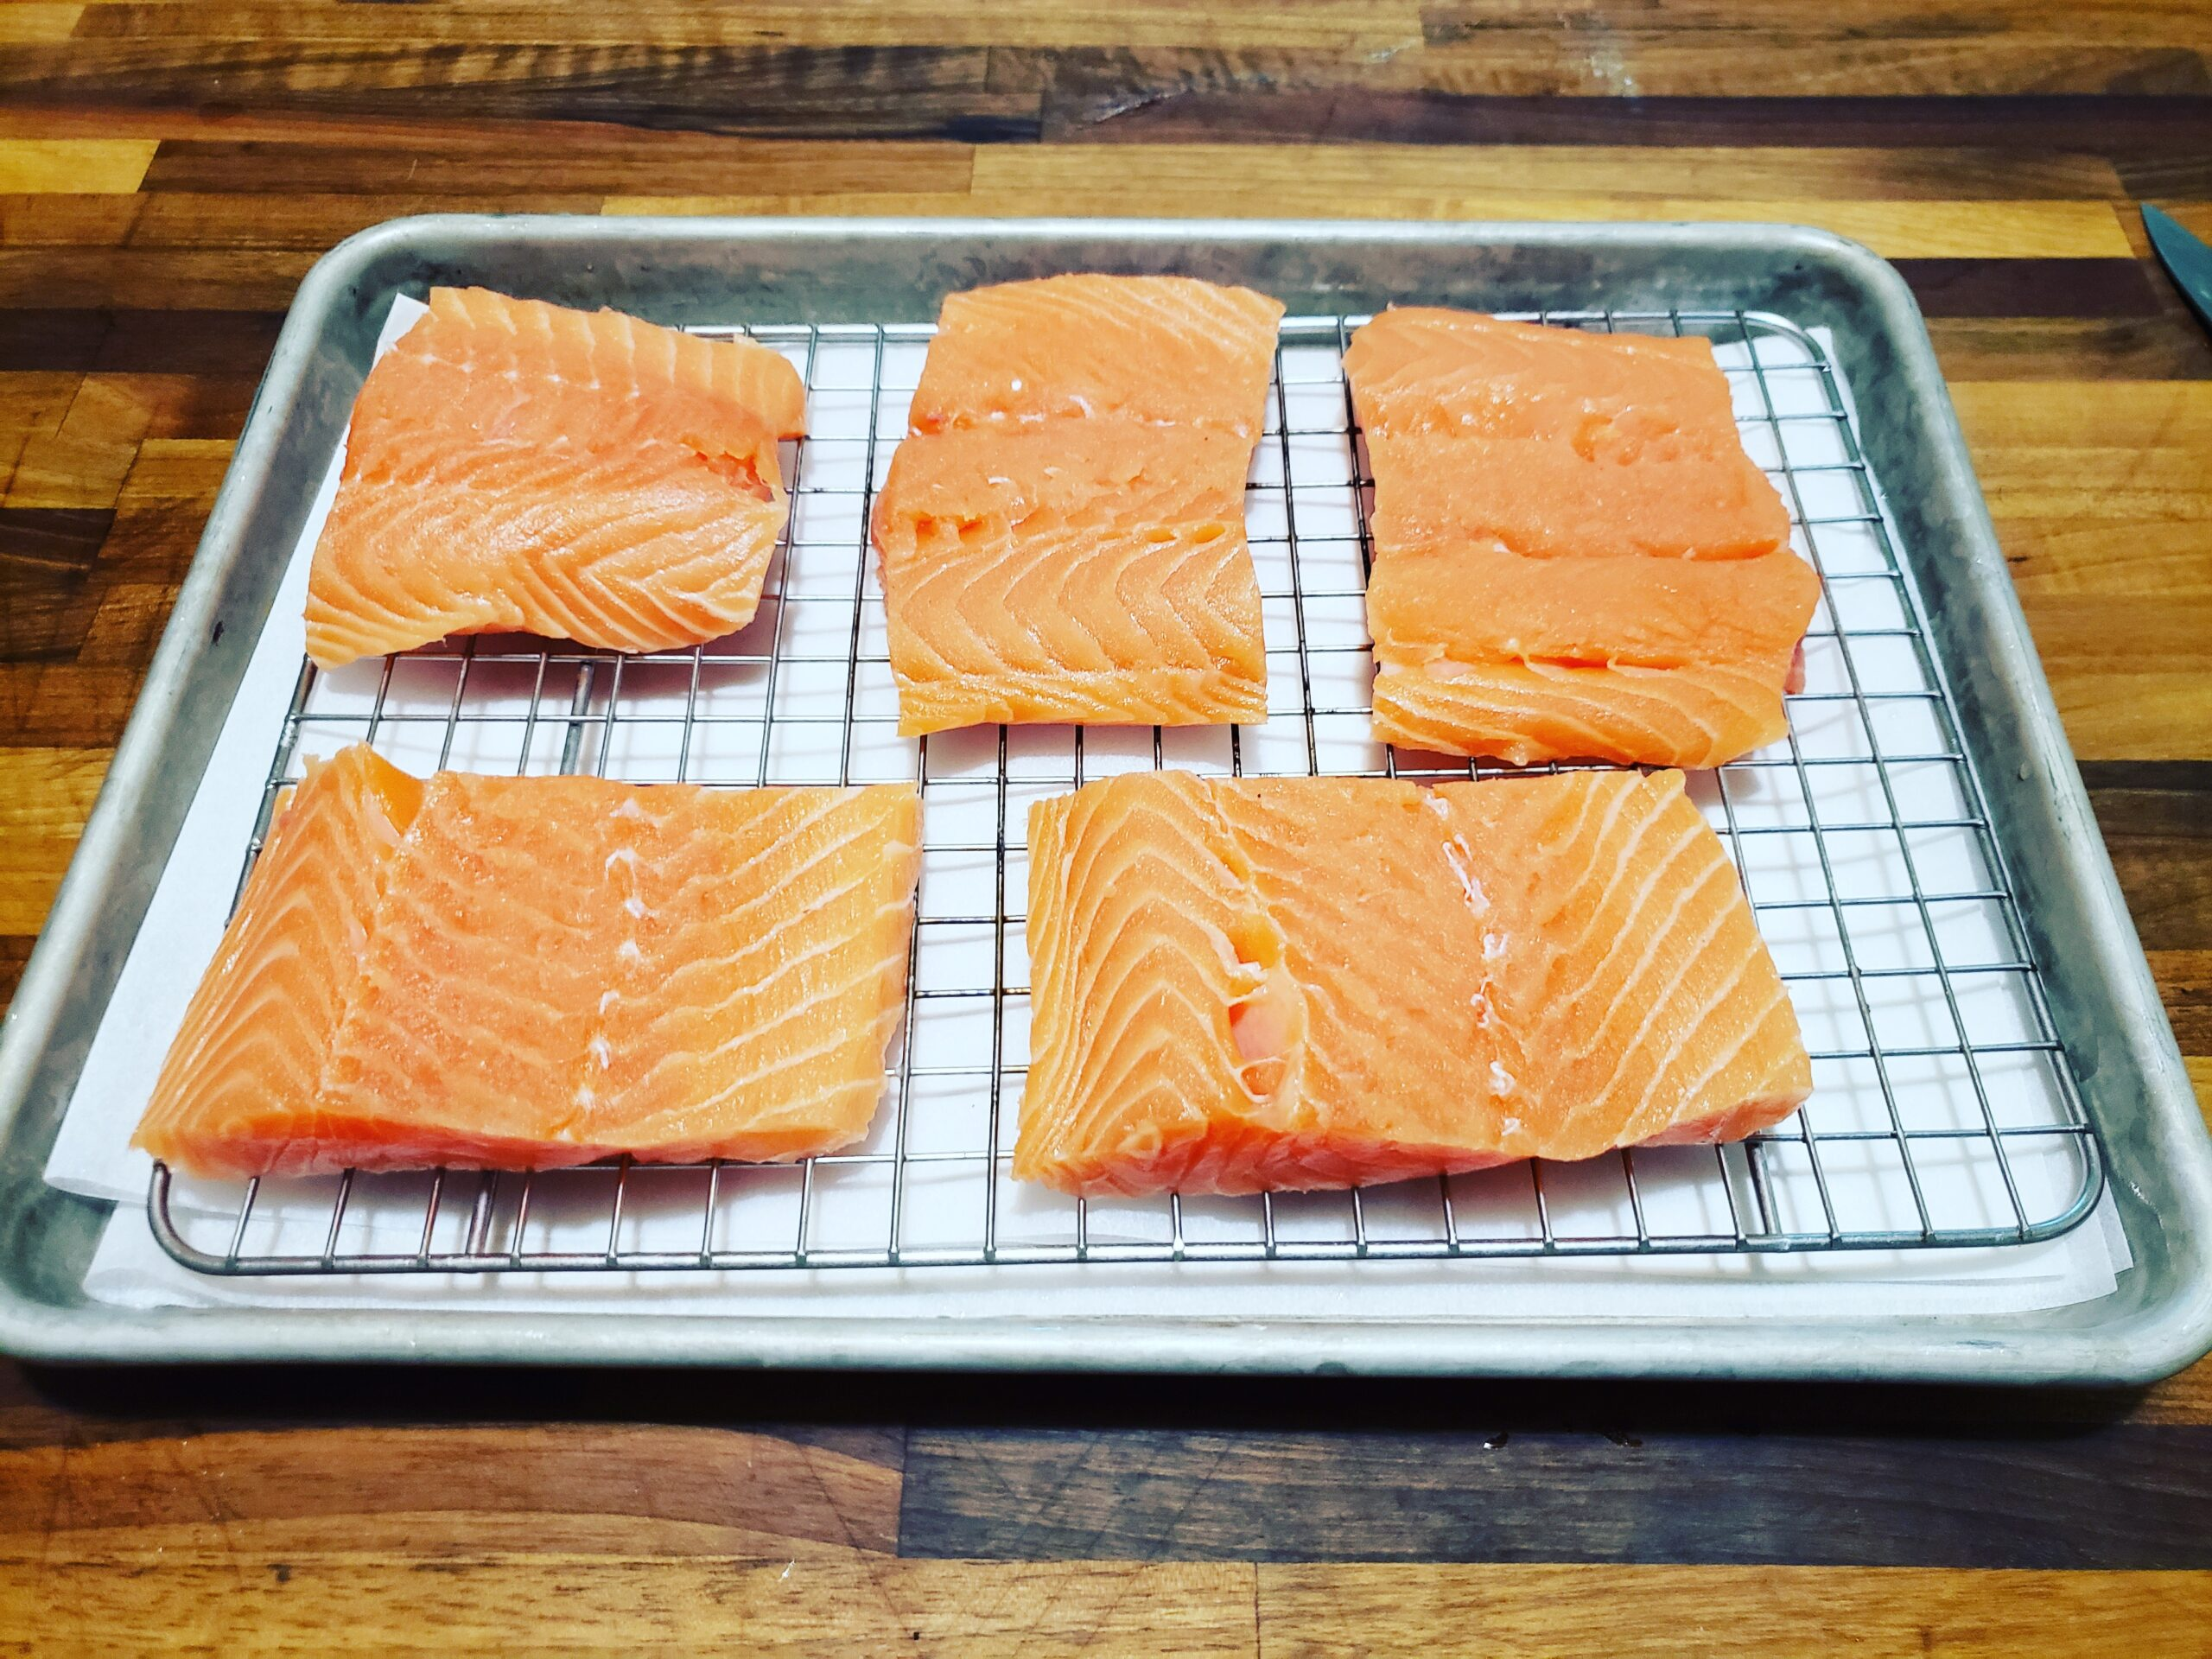 Personal Chef Secrets: How to make Crispy Salmon without skin!